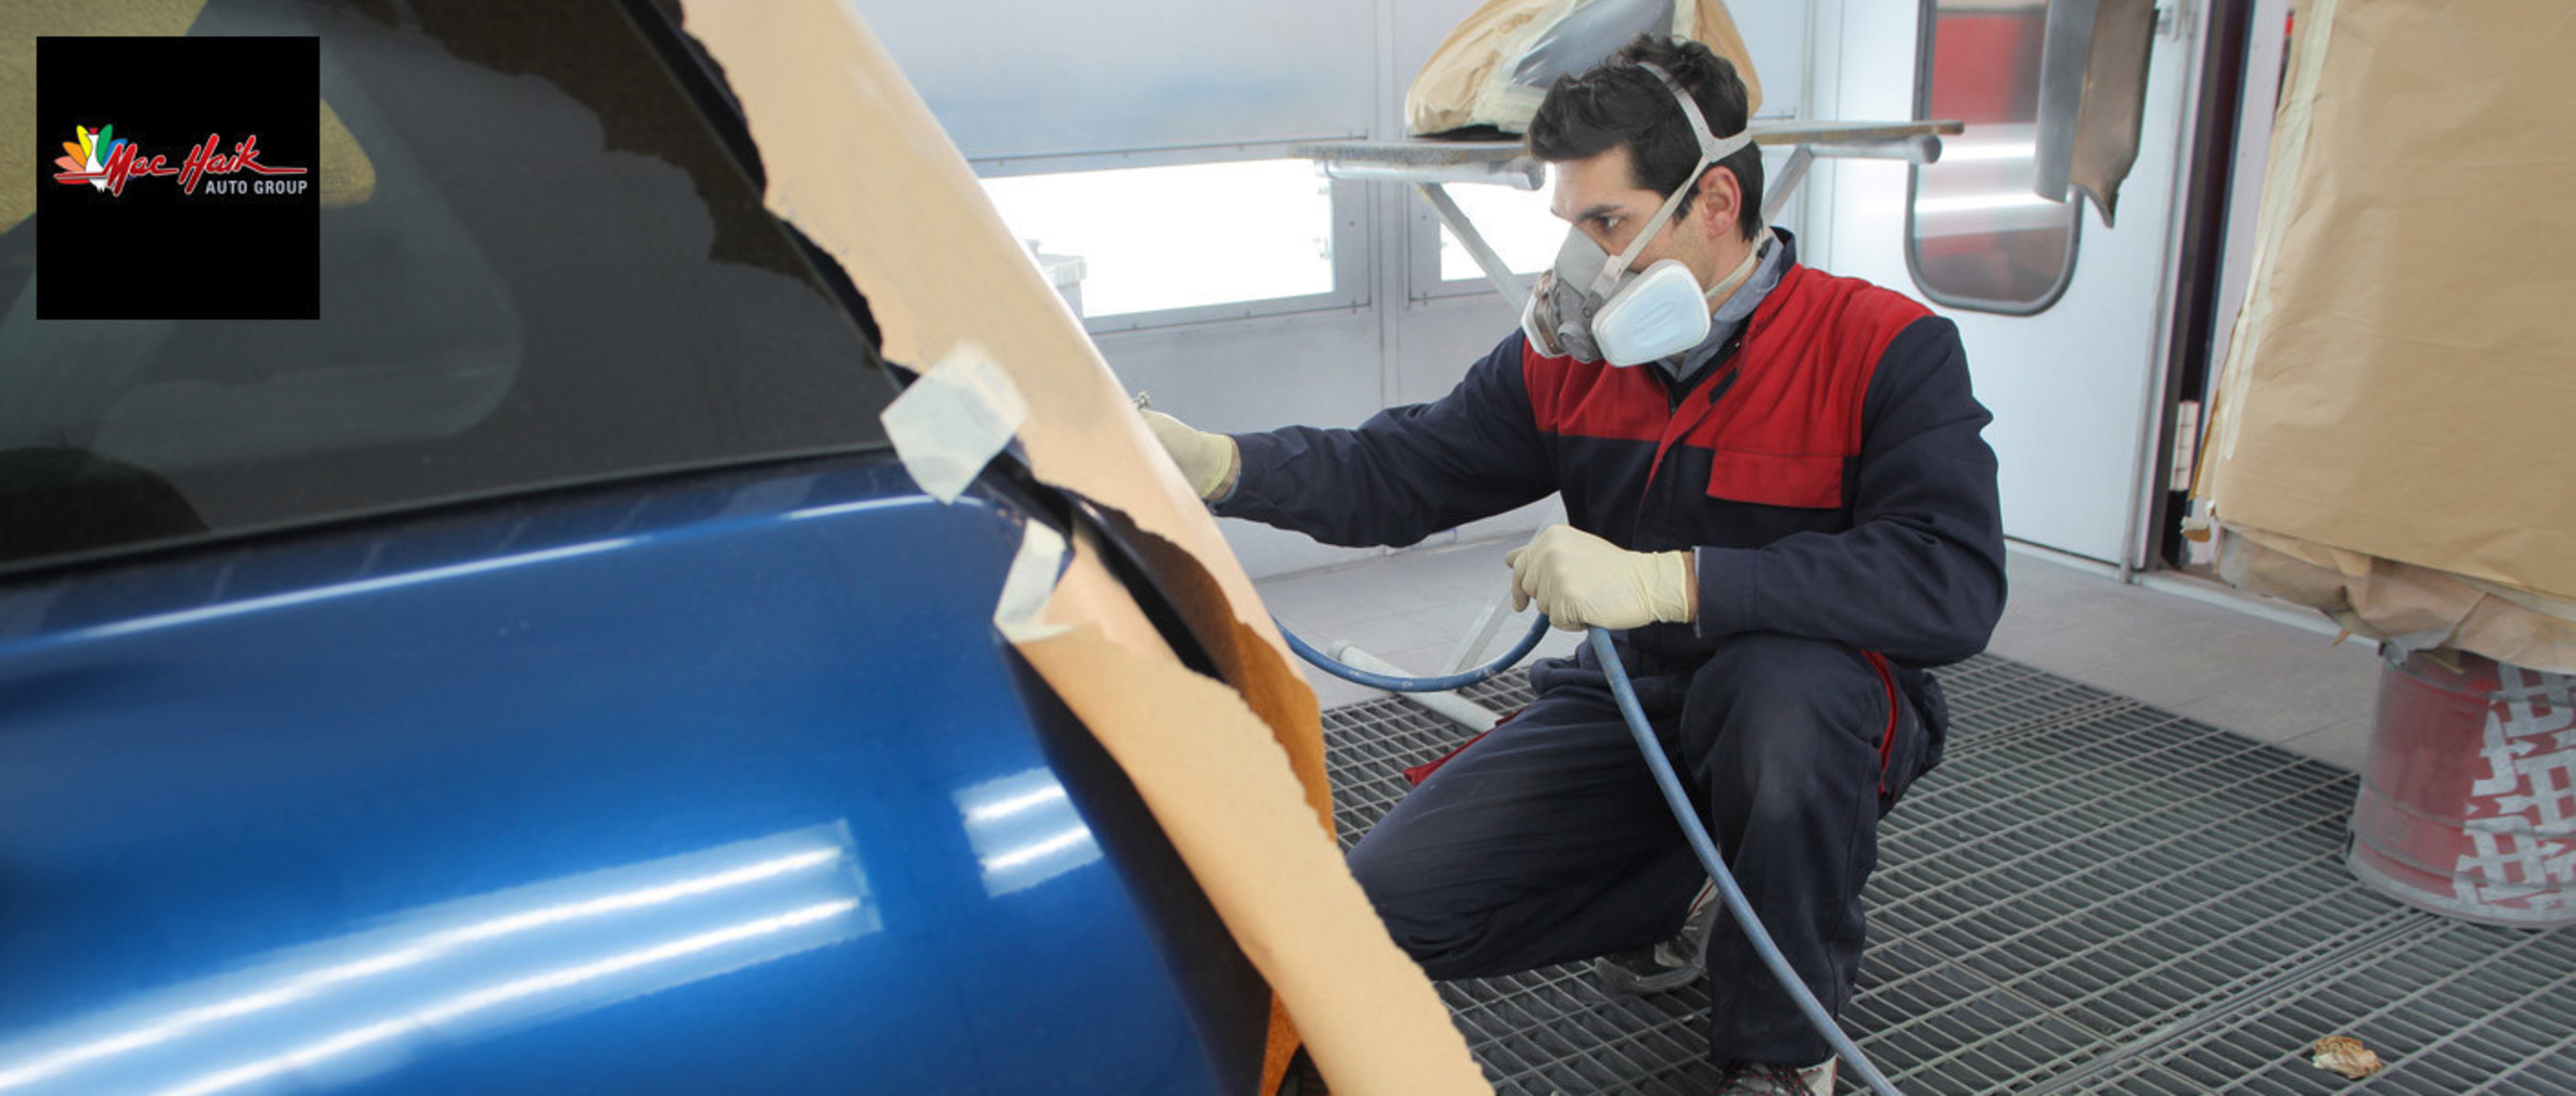 Dallas-area body shop offers expert collision repair for local Ford owners